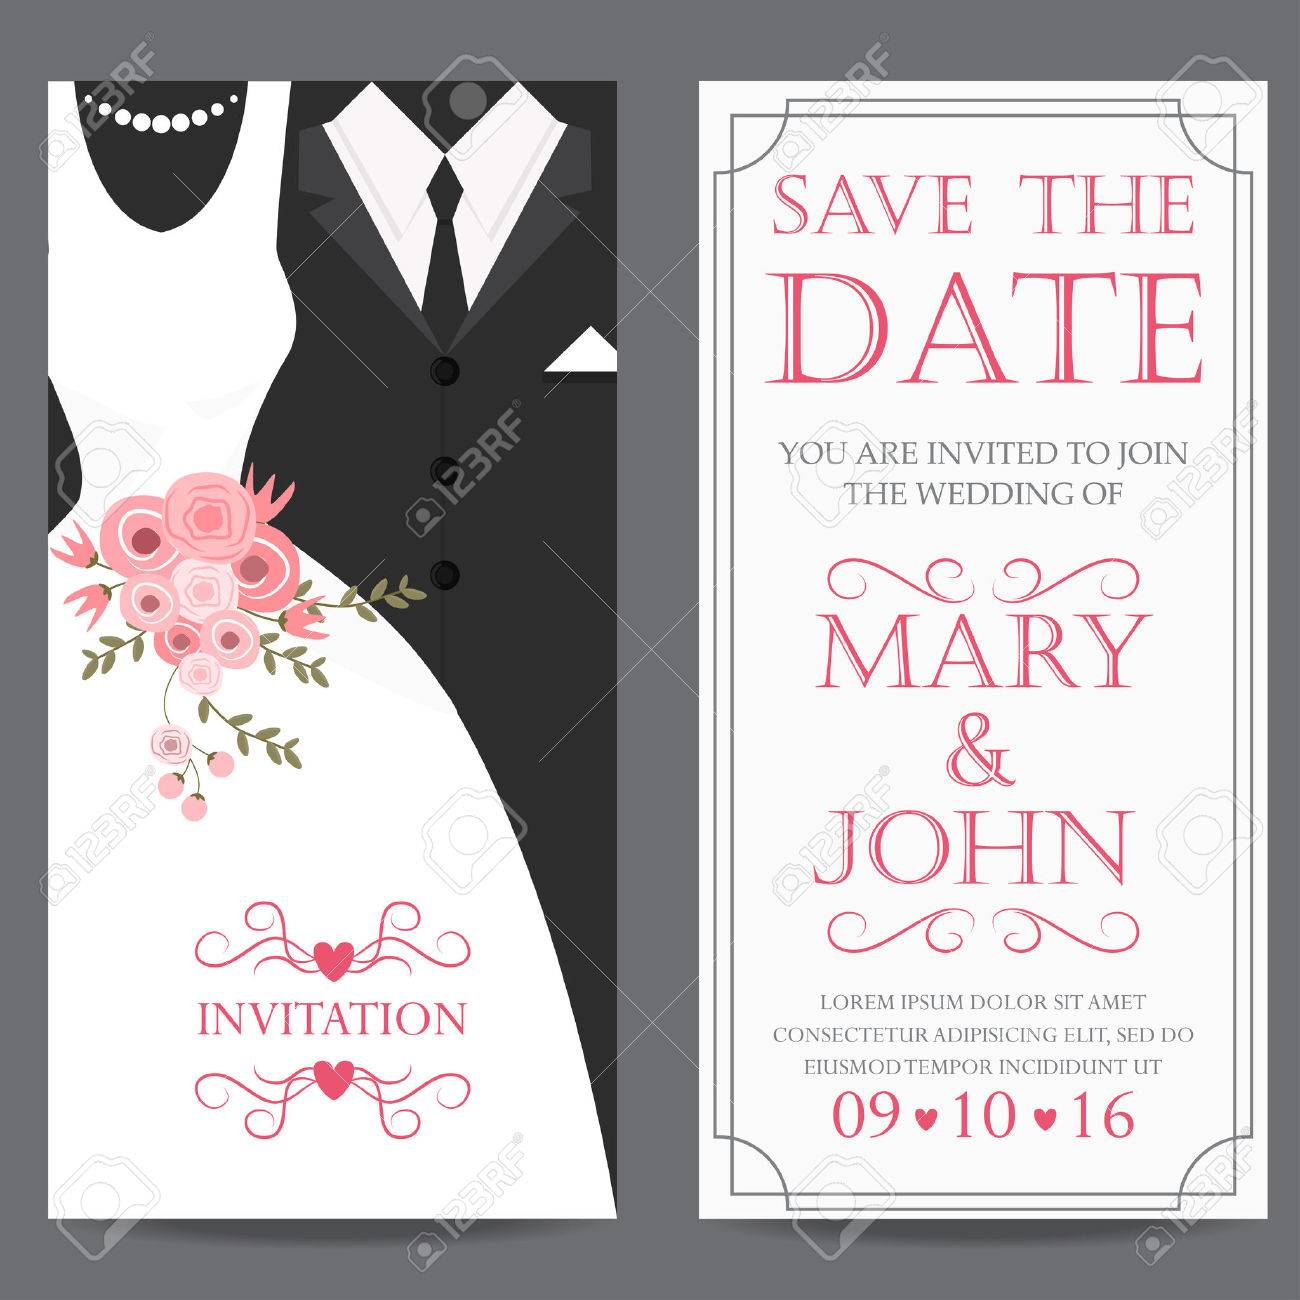 Wedding Invitation Card Bride And Groom Dress Concept Love